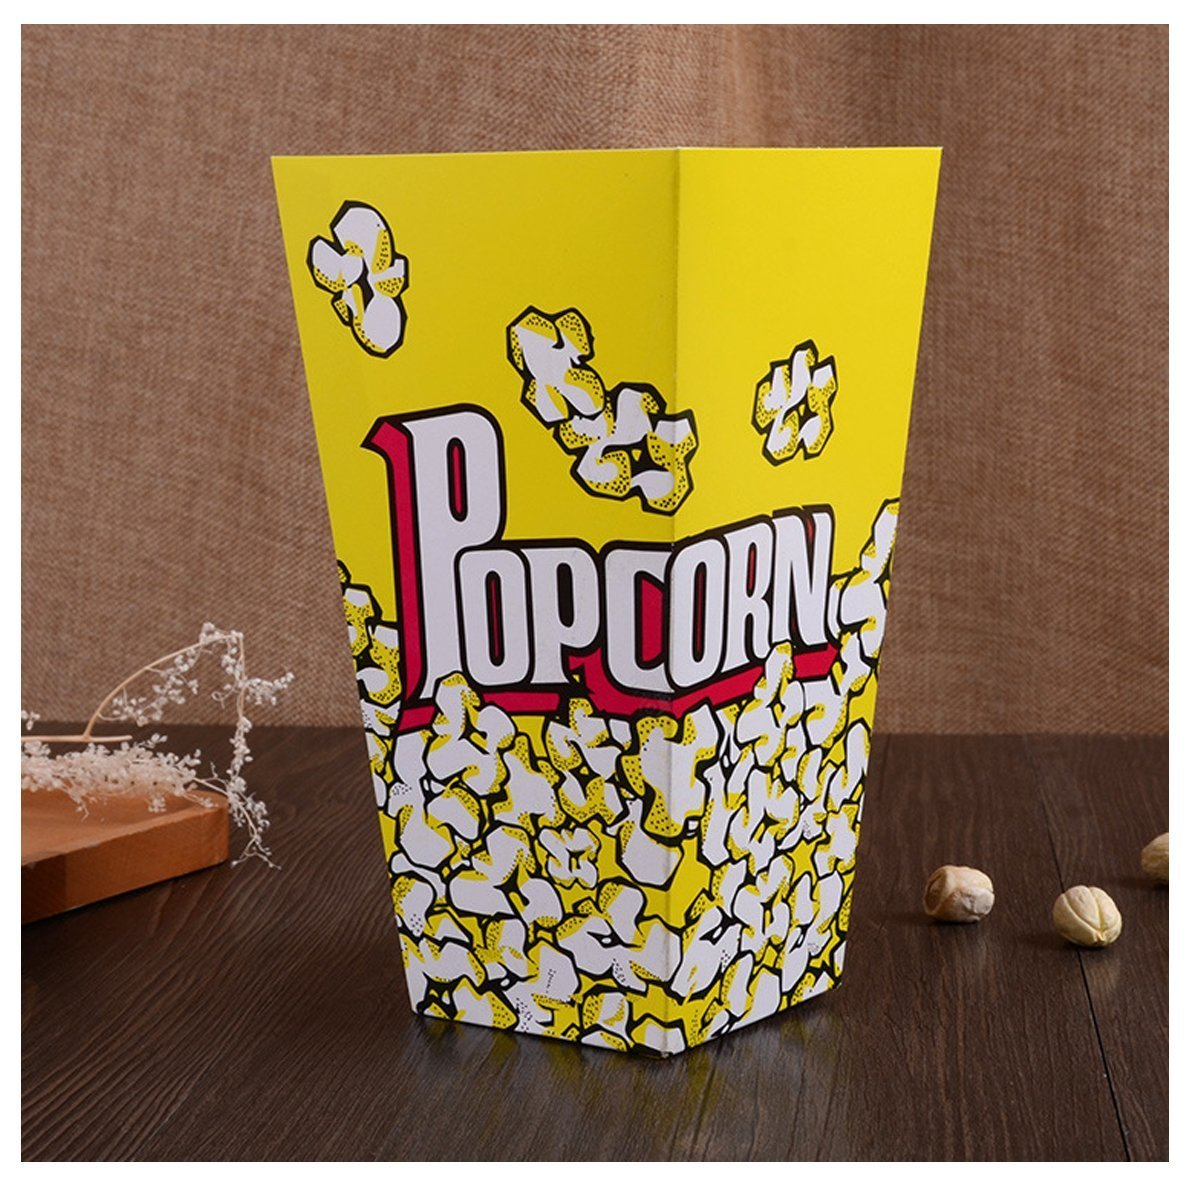 Drhob Set of 40 Movie Theater Popcorn Boxes - Small Paper Popcorn Favor Bags Cardboard Candy Container Supplies for Concession Stands,Carnival,Party,Wedding